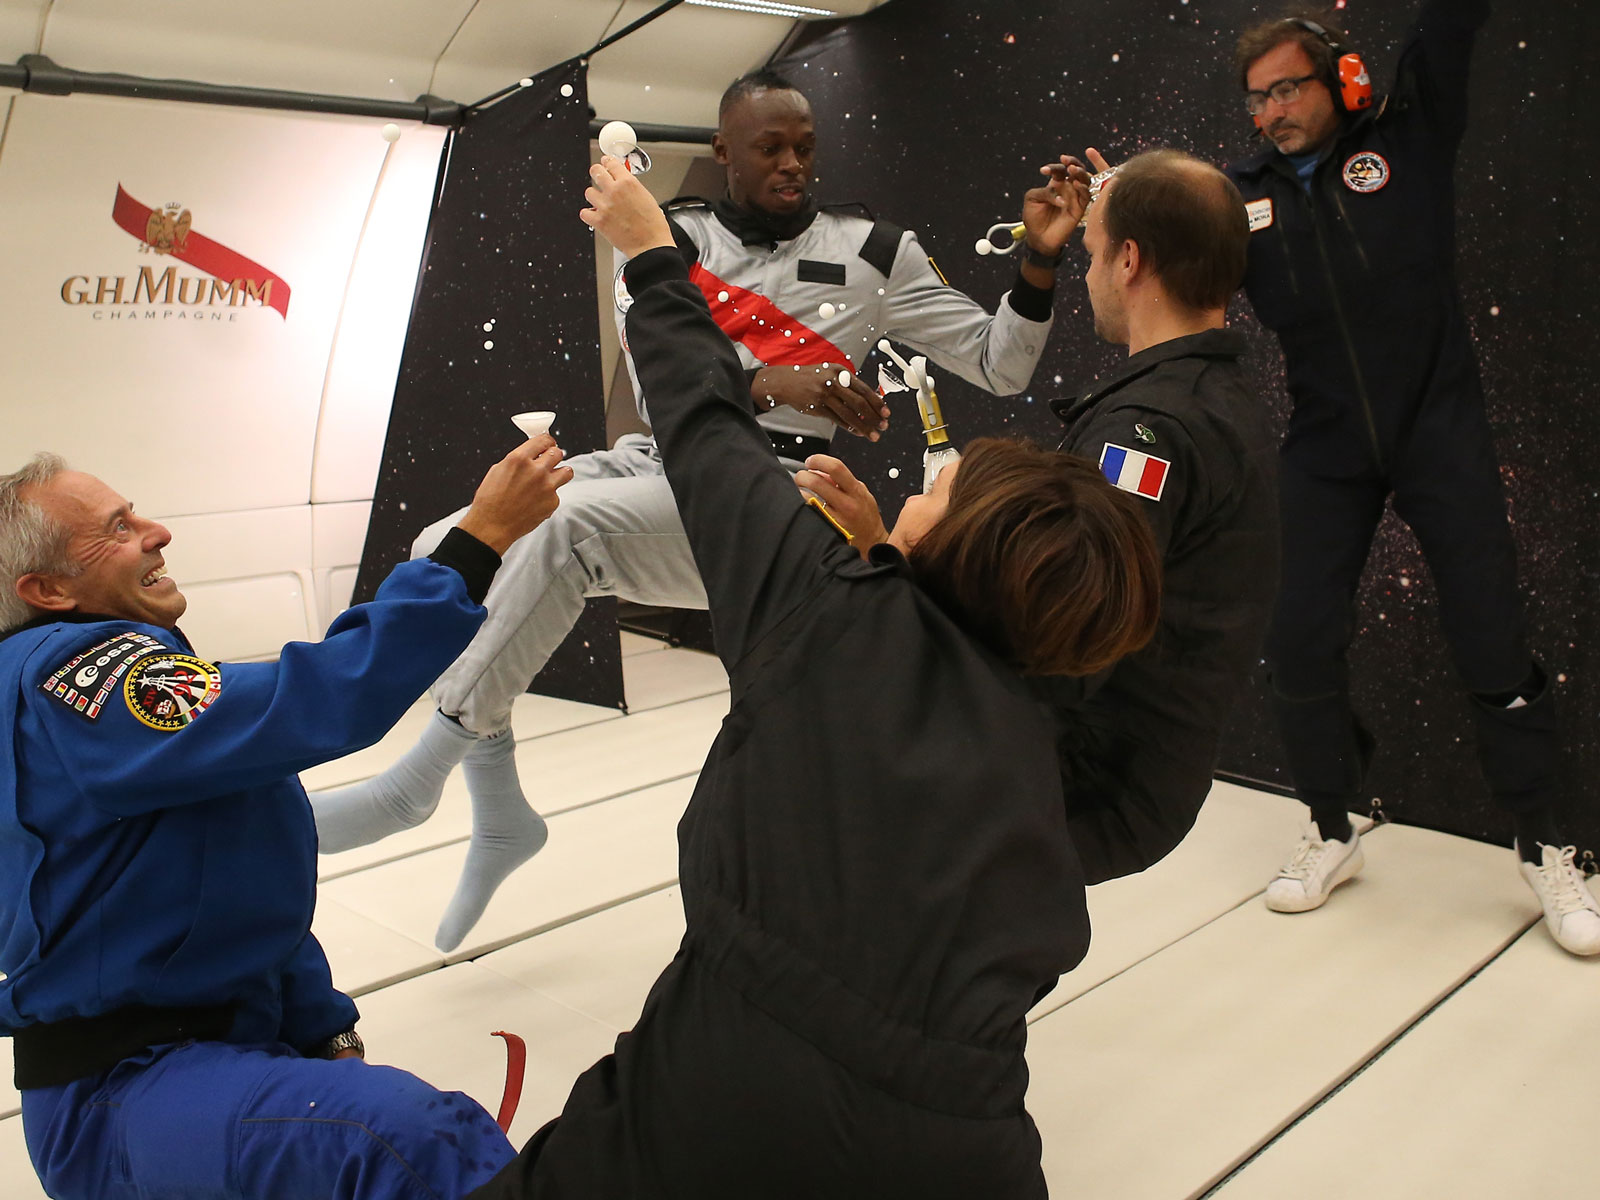 I Drank Champagne in Zero Gravity – and Being a Trailblazer Isn't as Easy as It Sounds